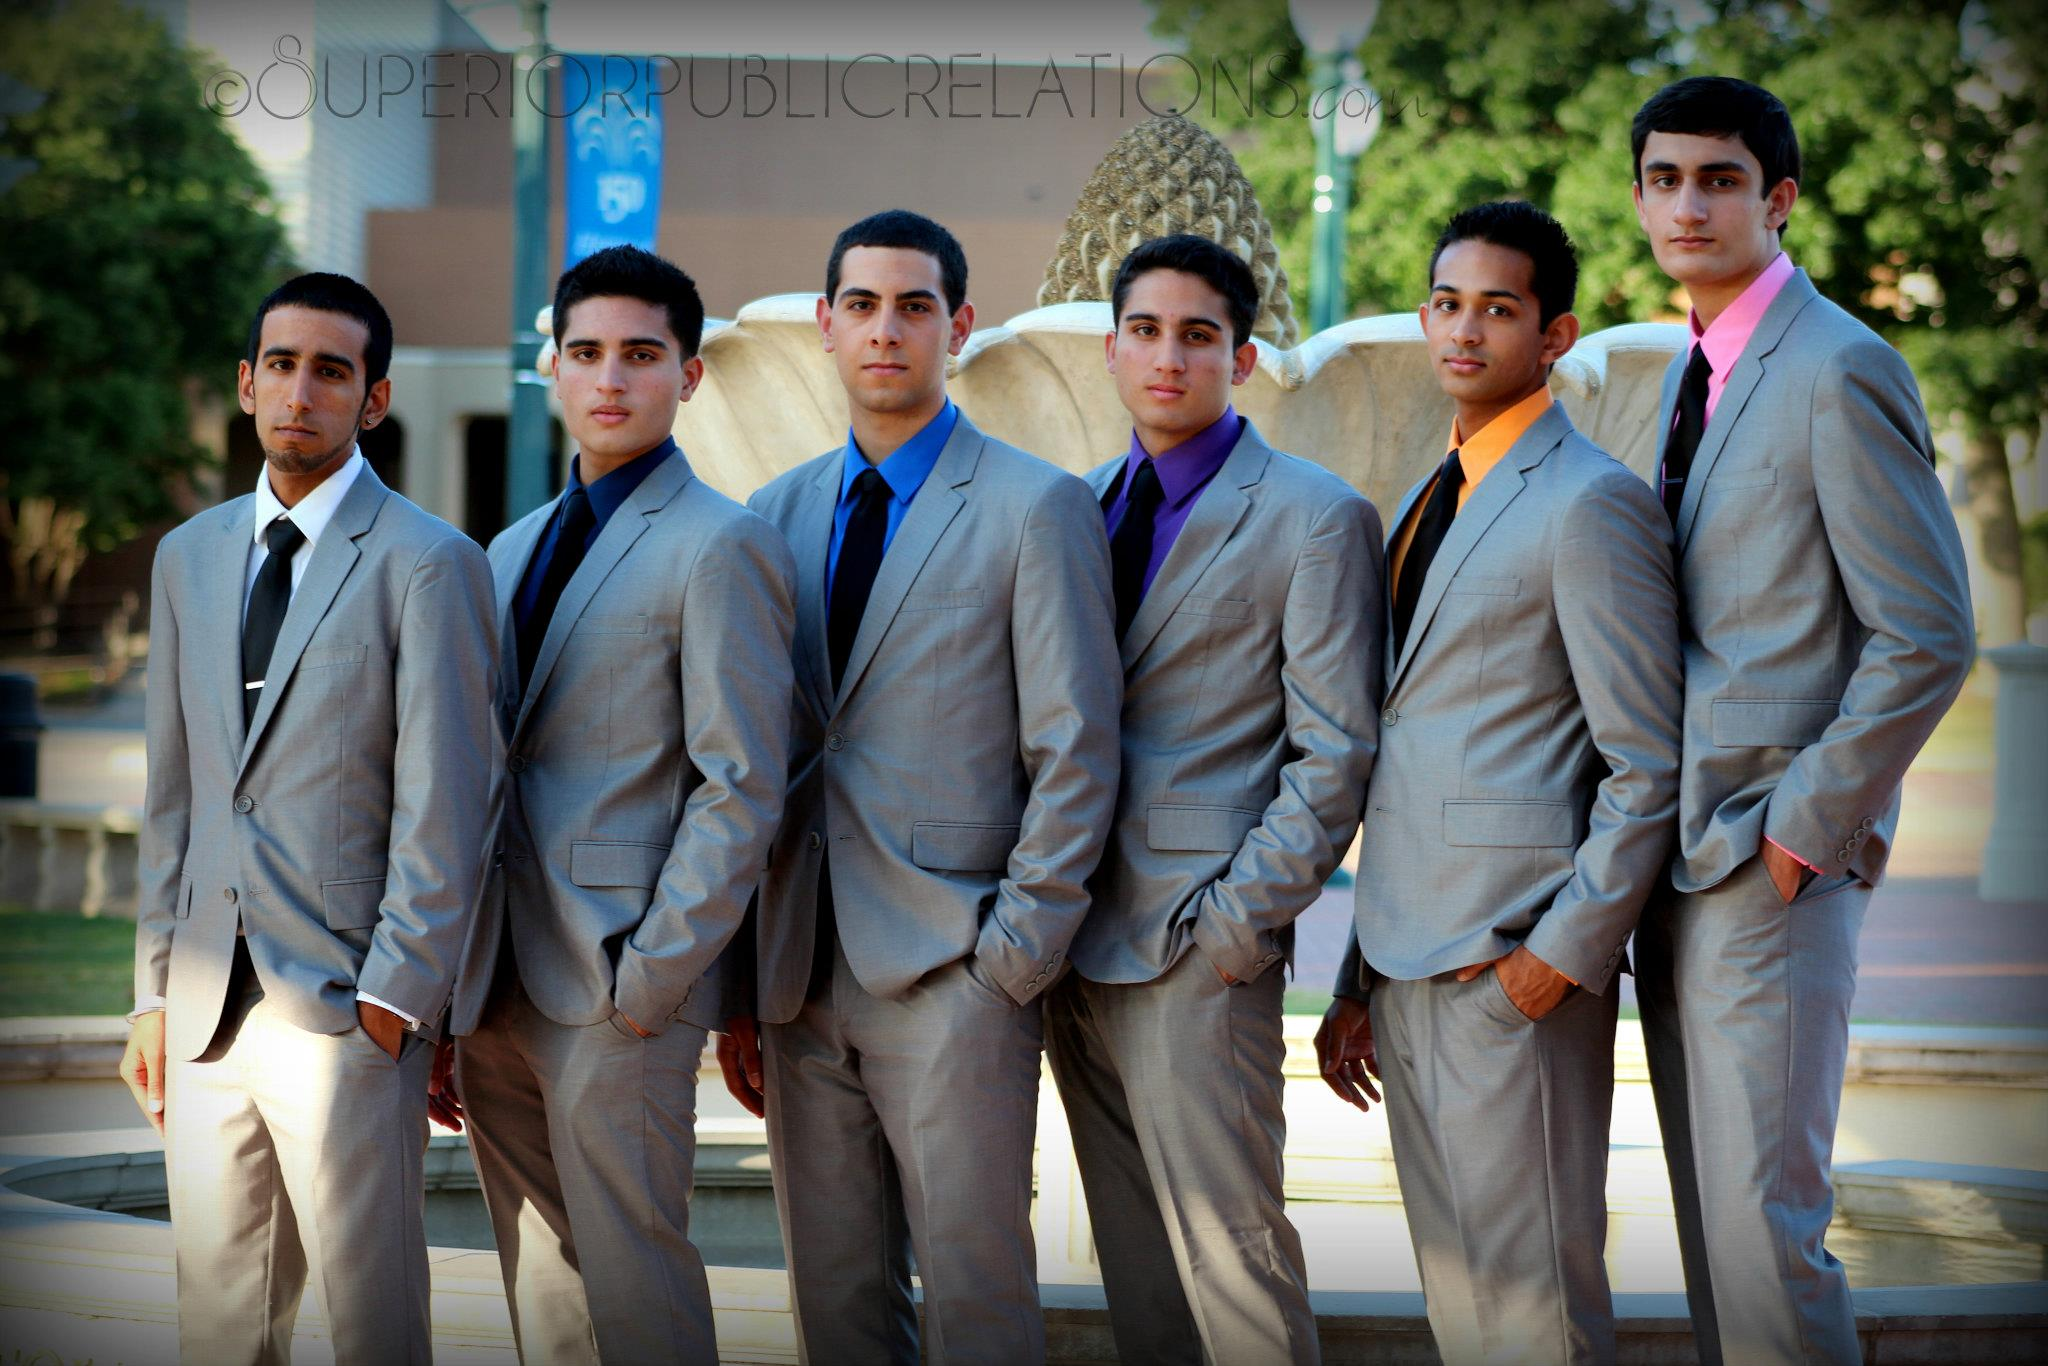 South Asian Fraternities 19